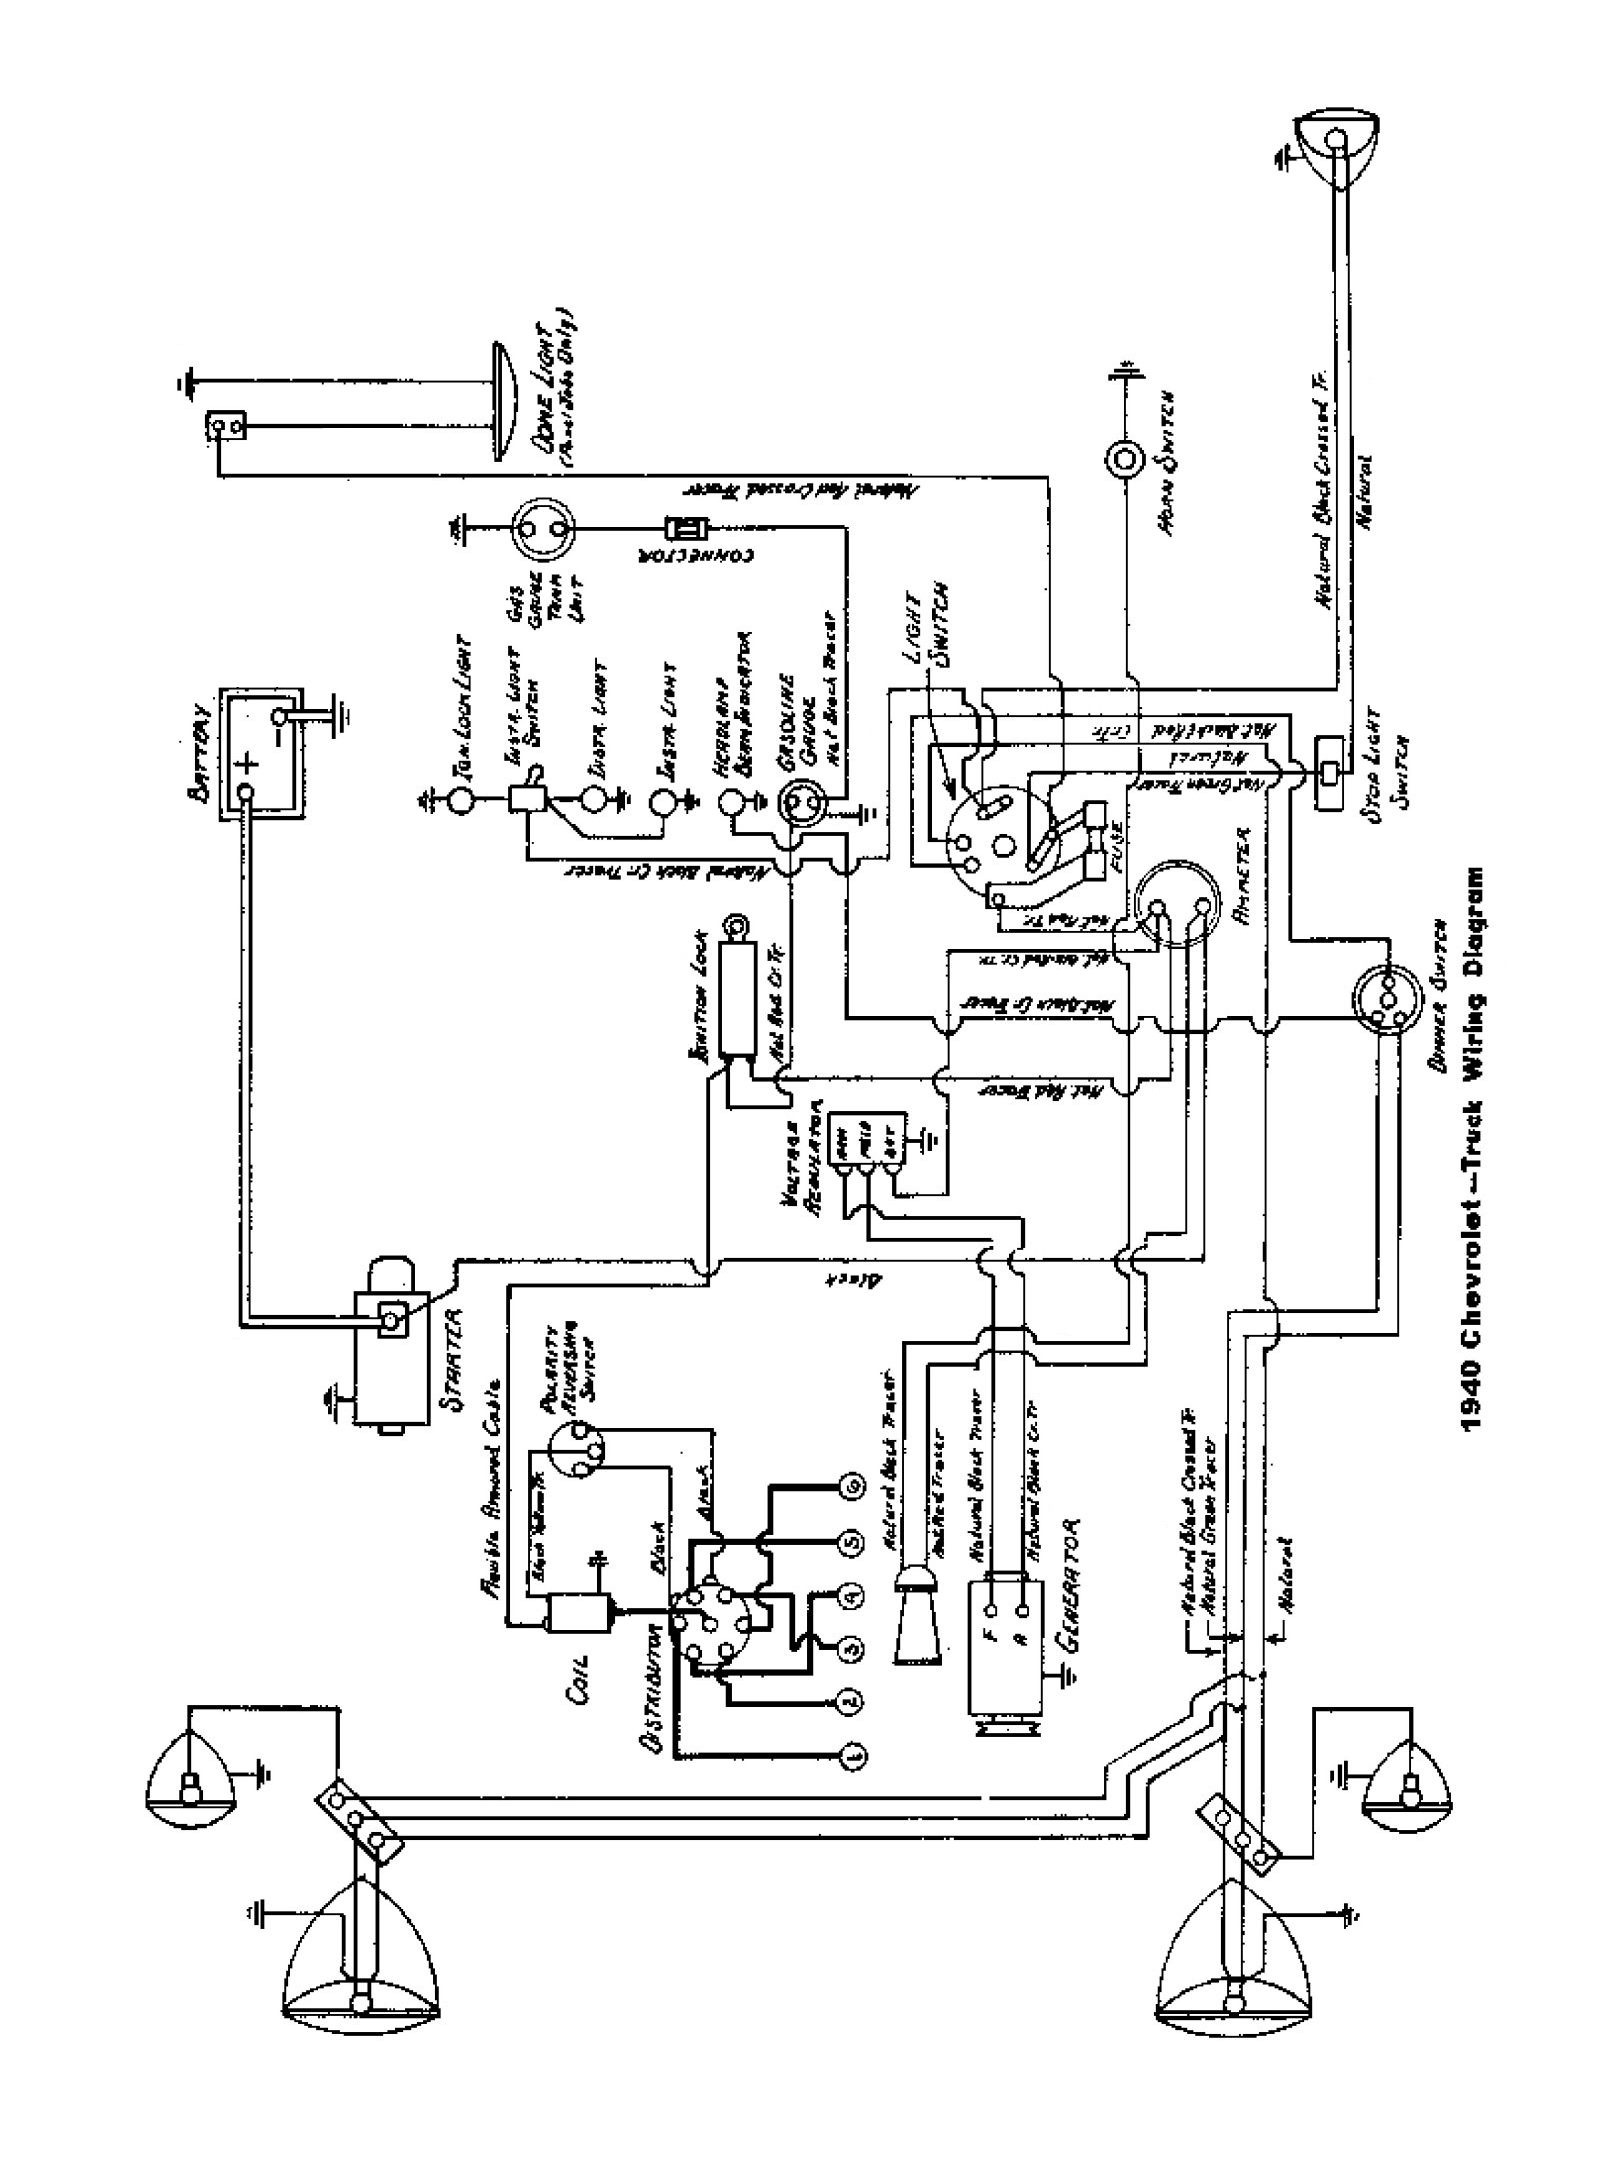 Ford Truck Wiring Diagrams : Wiring diagram for ford headlight switch get free